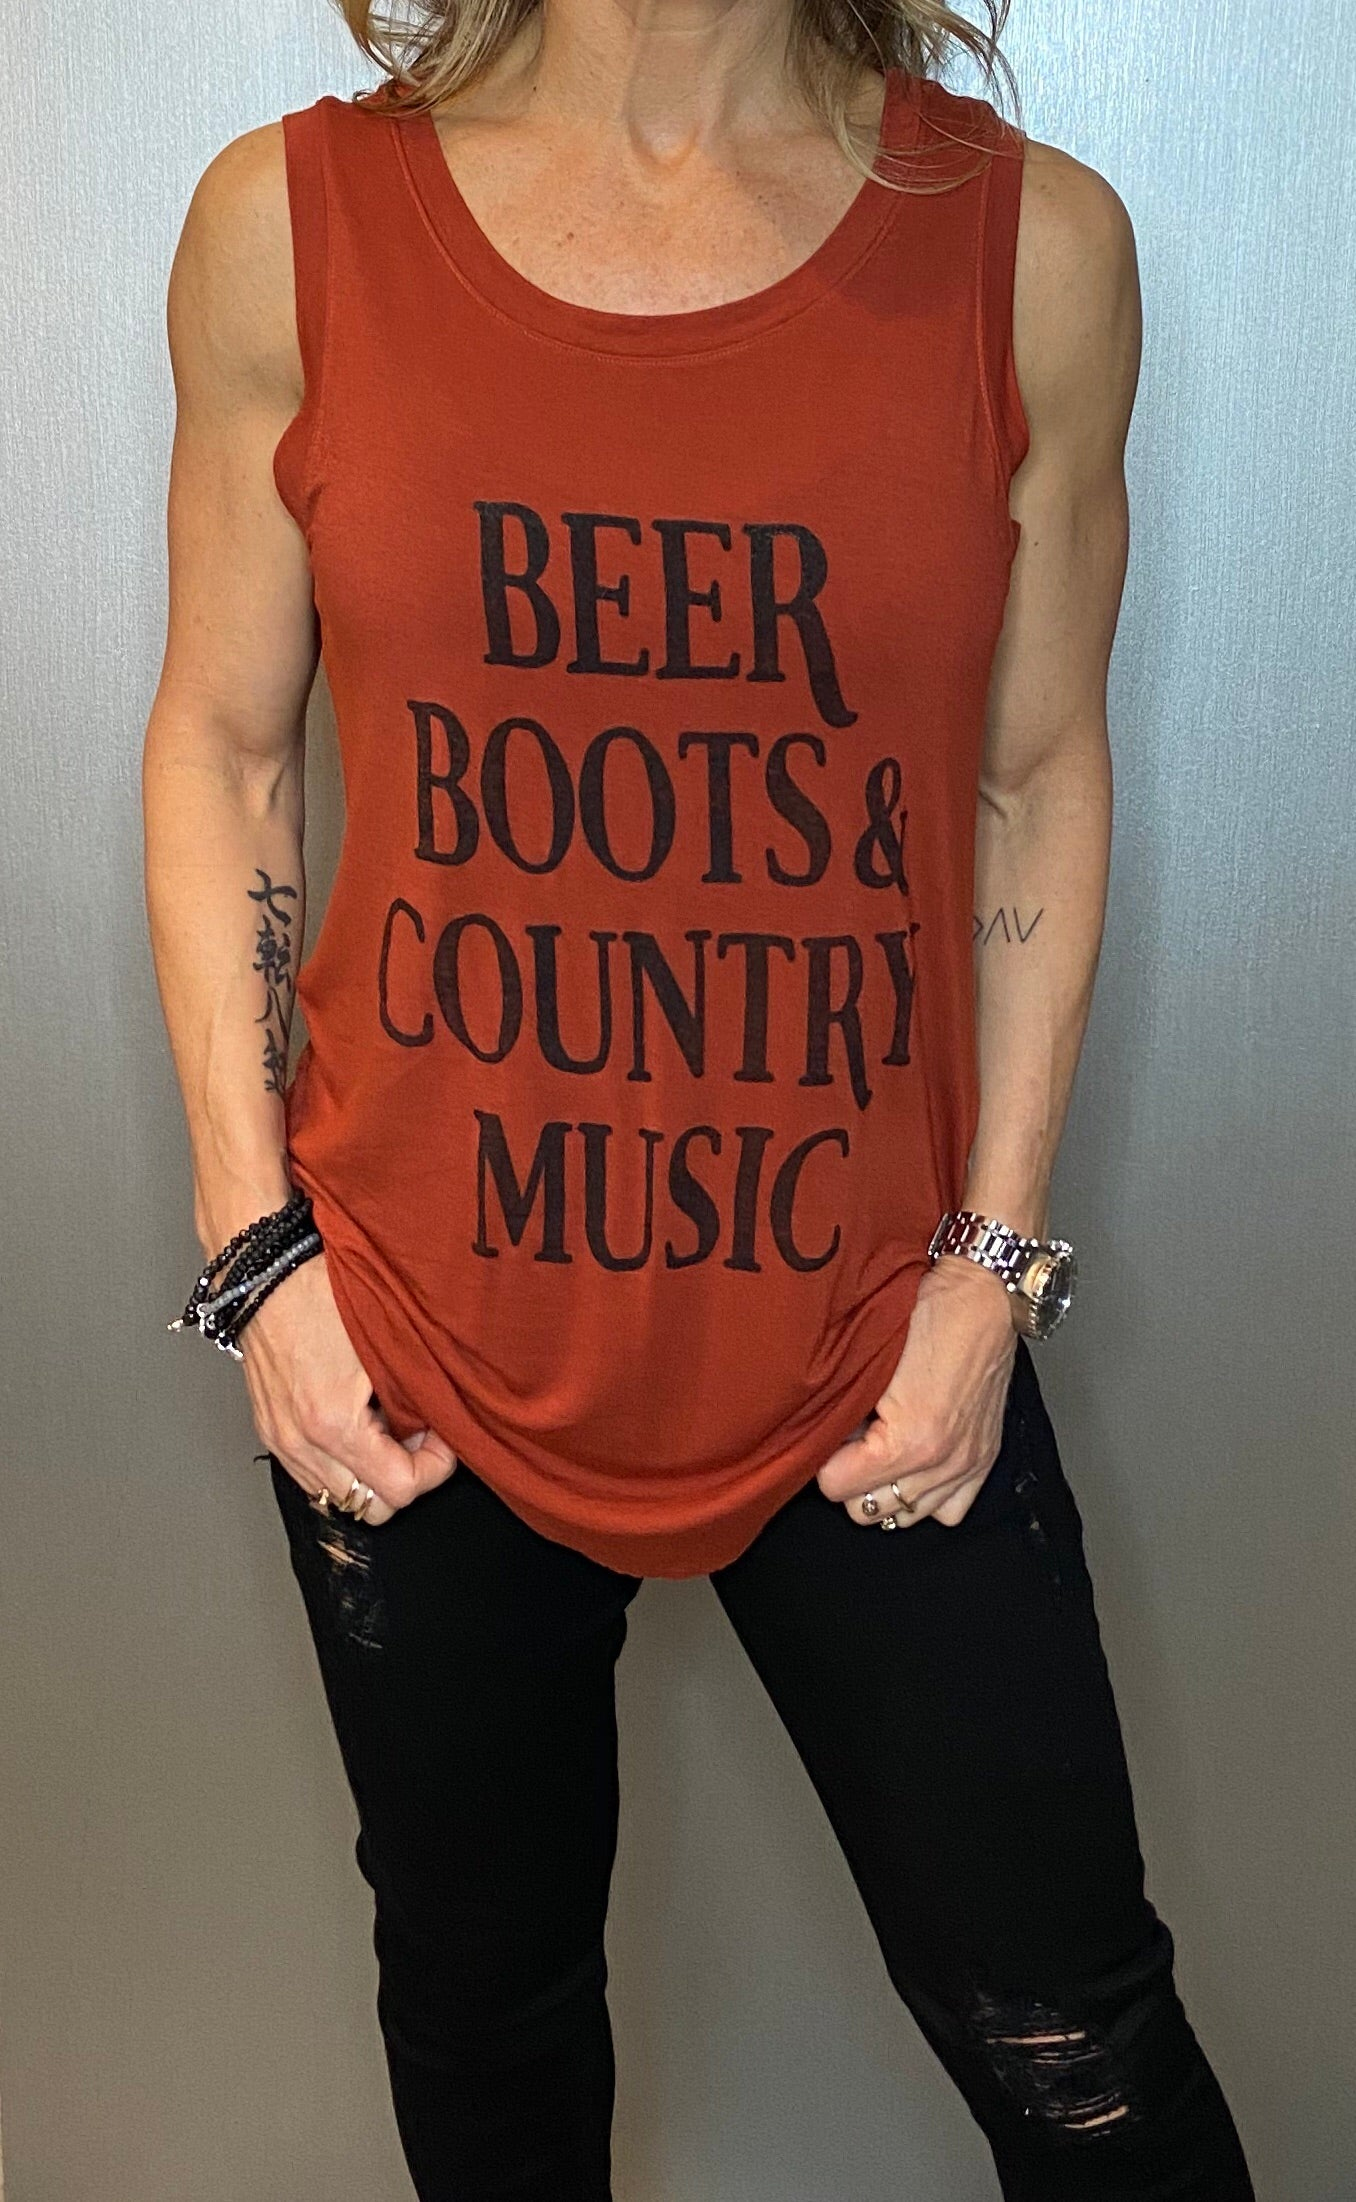 Beer, Boots & County Music Tank